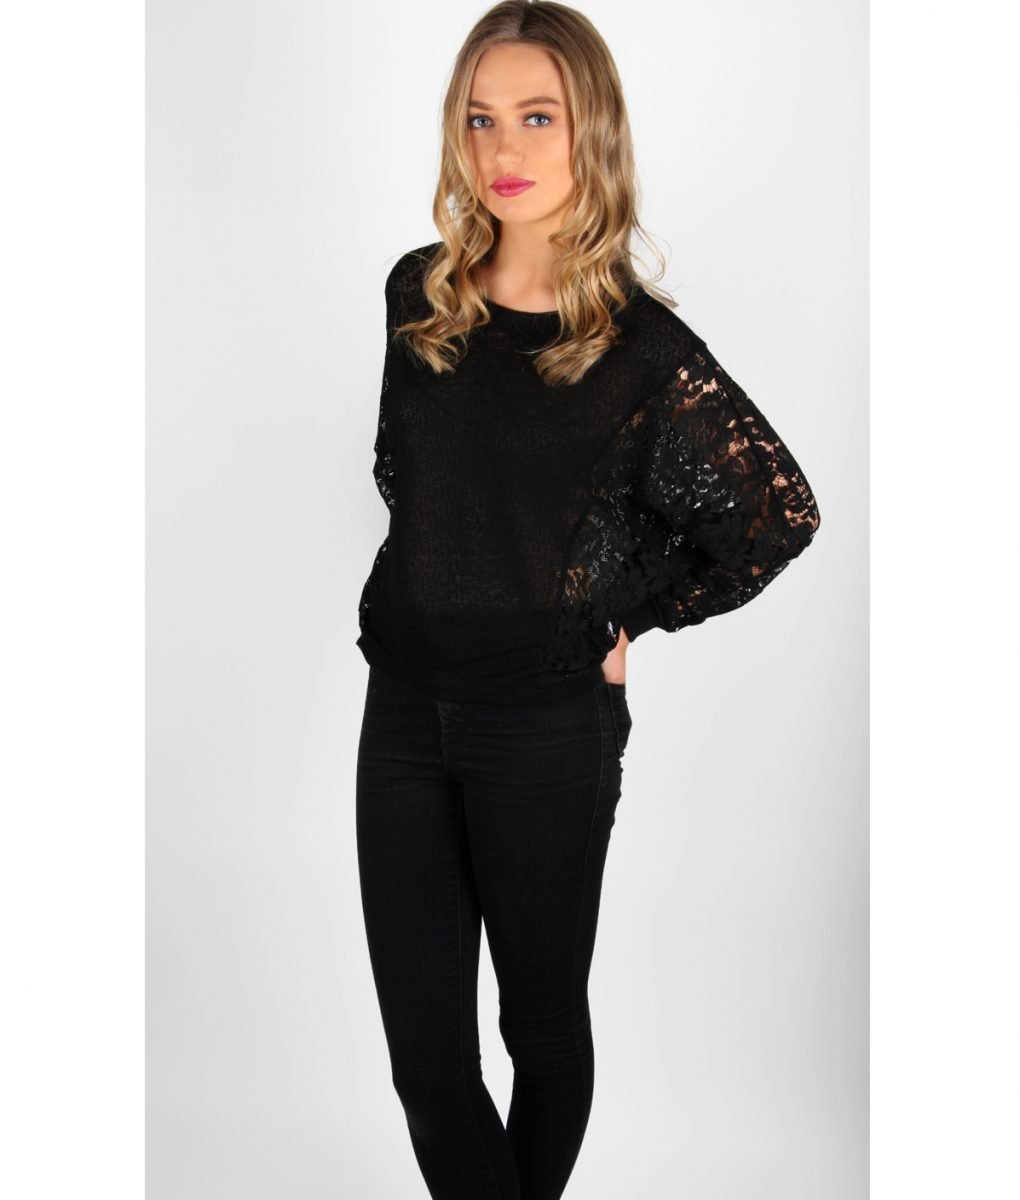 Alila Black Lace jumper front